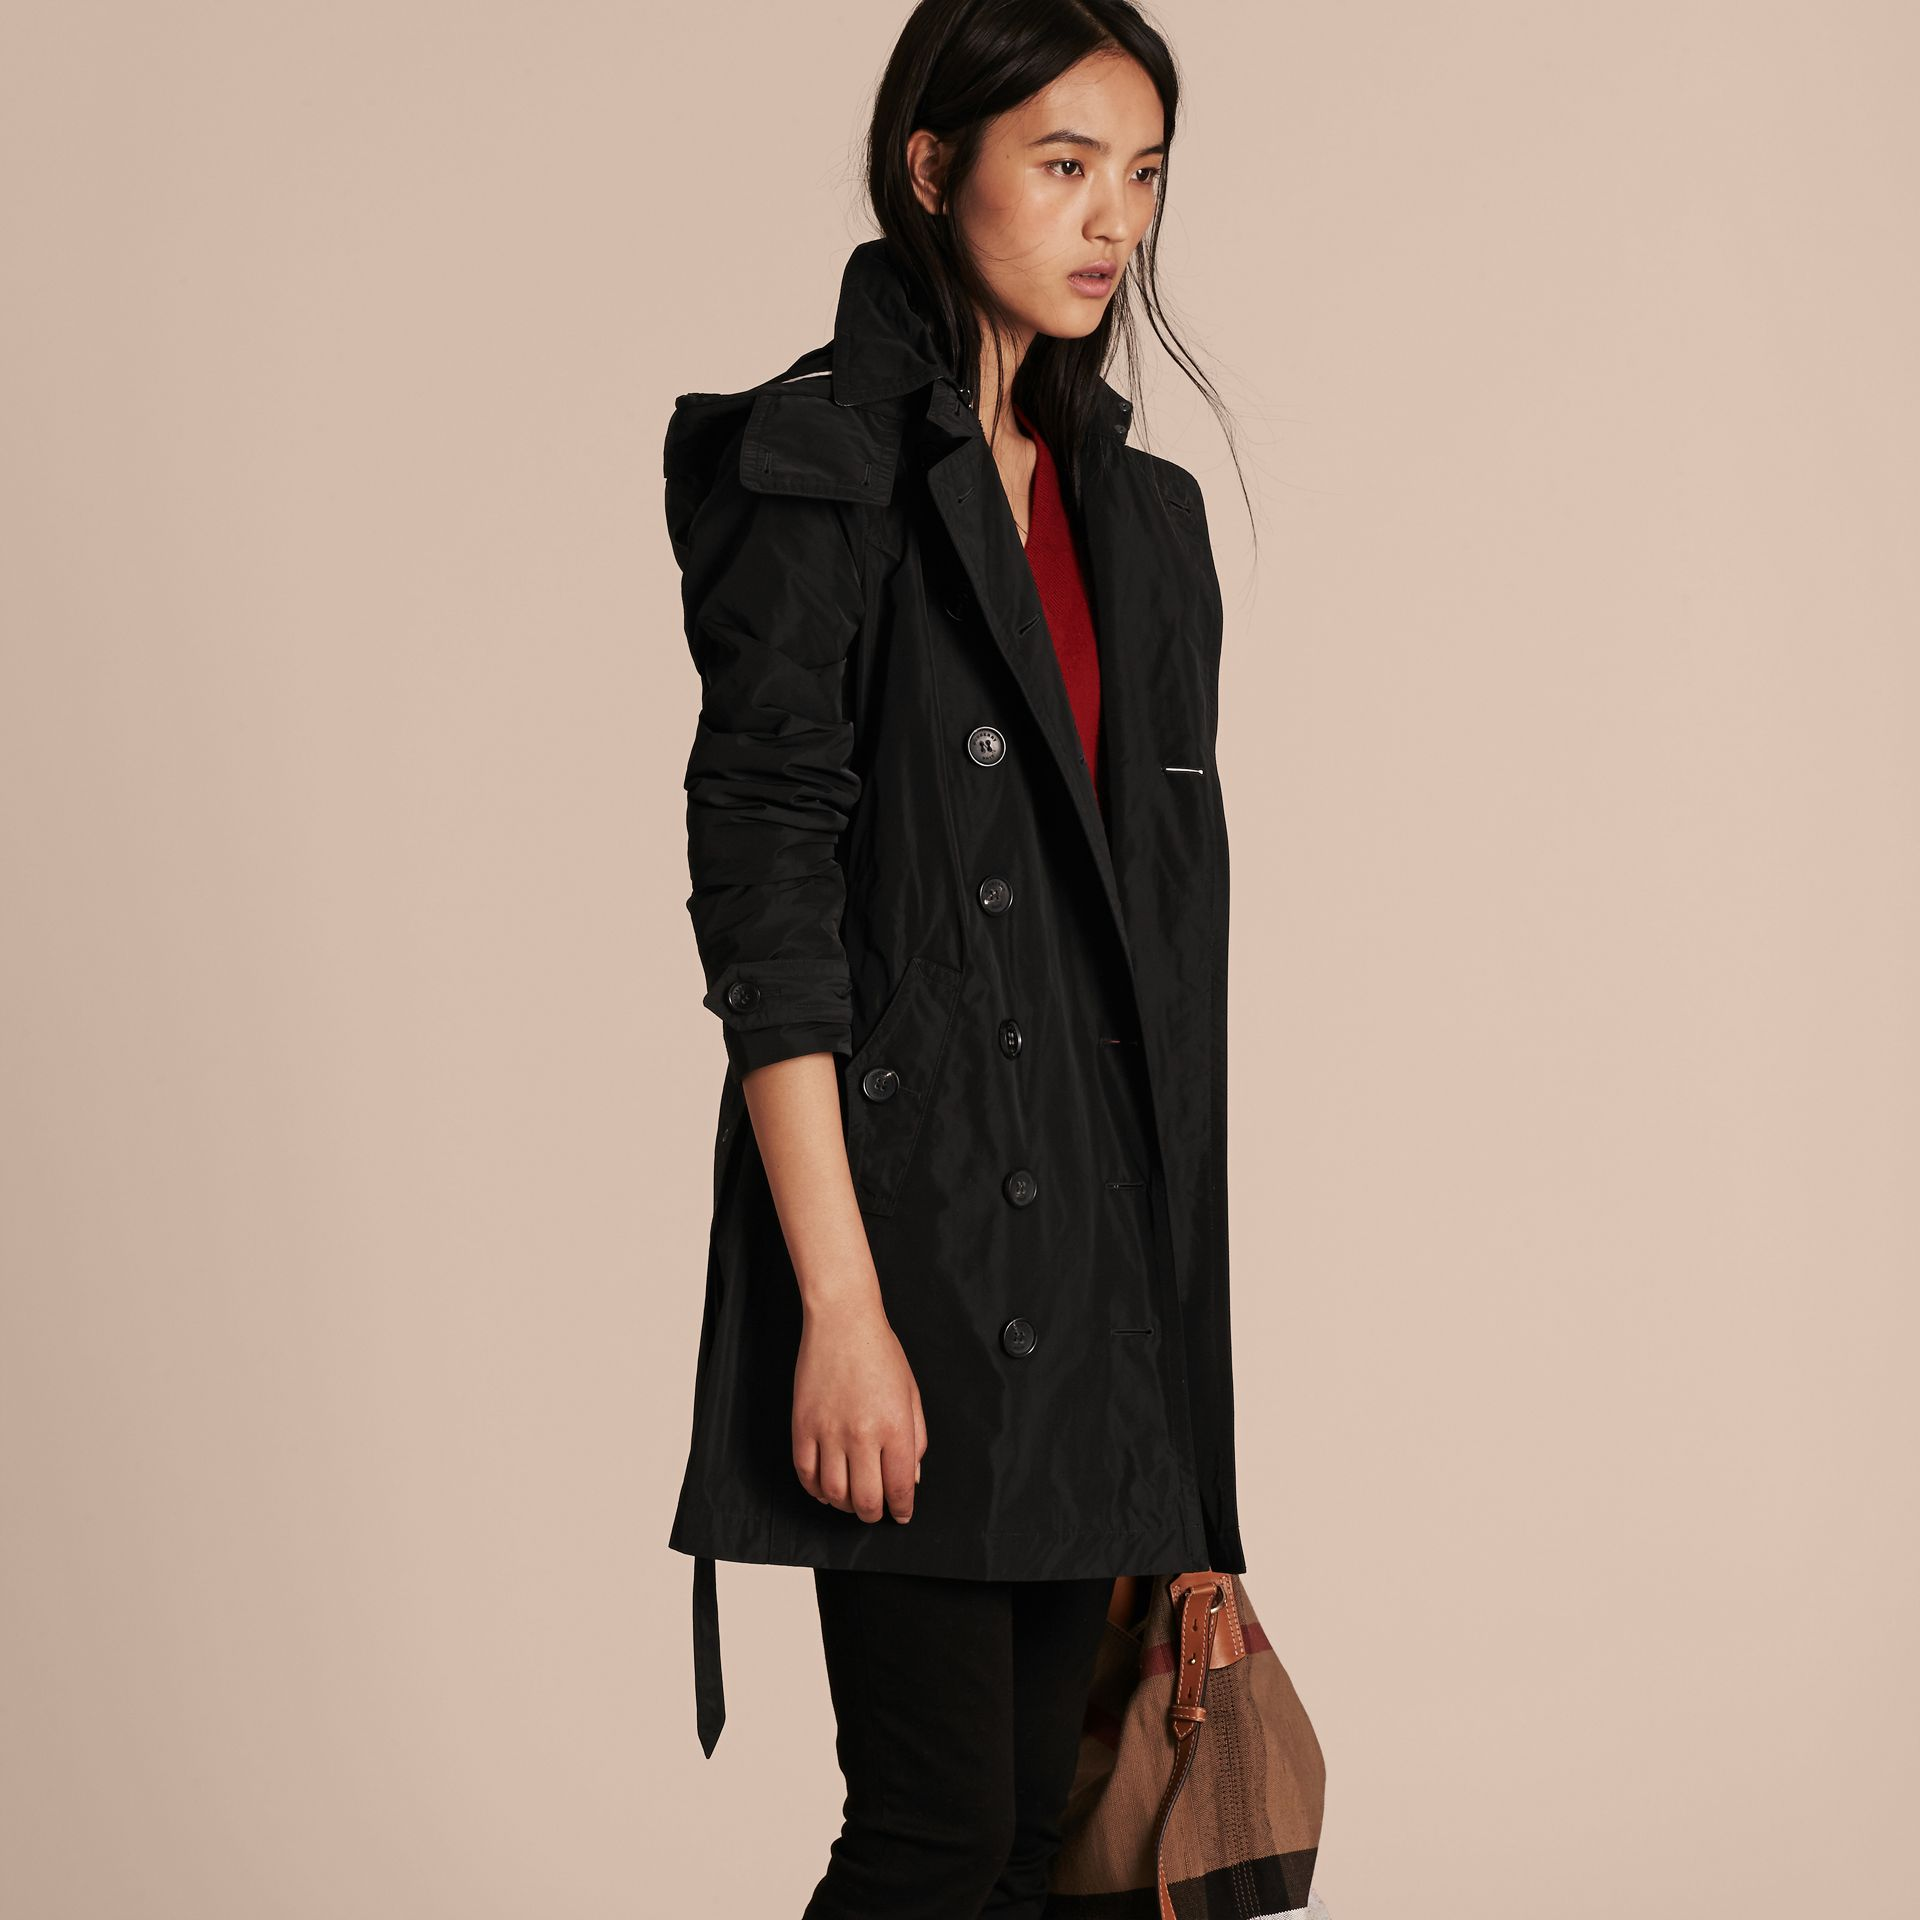 Black Taffeta Trench Coat with Detachable Hood Black - gallery image 6